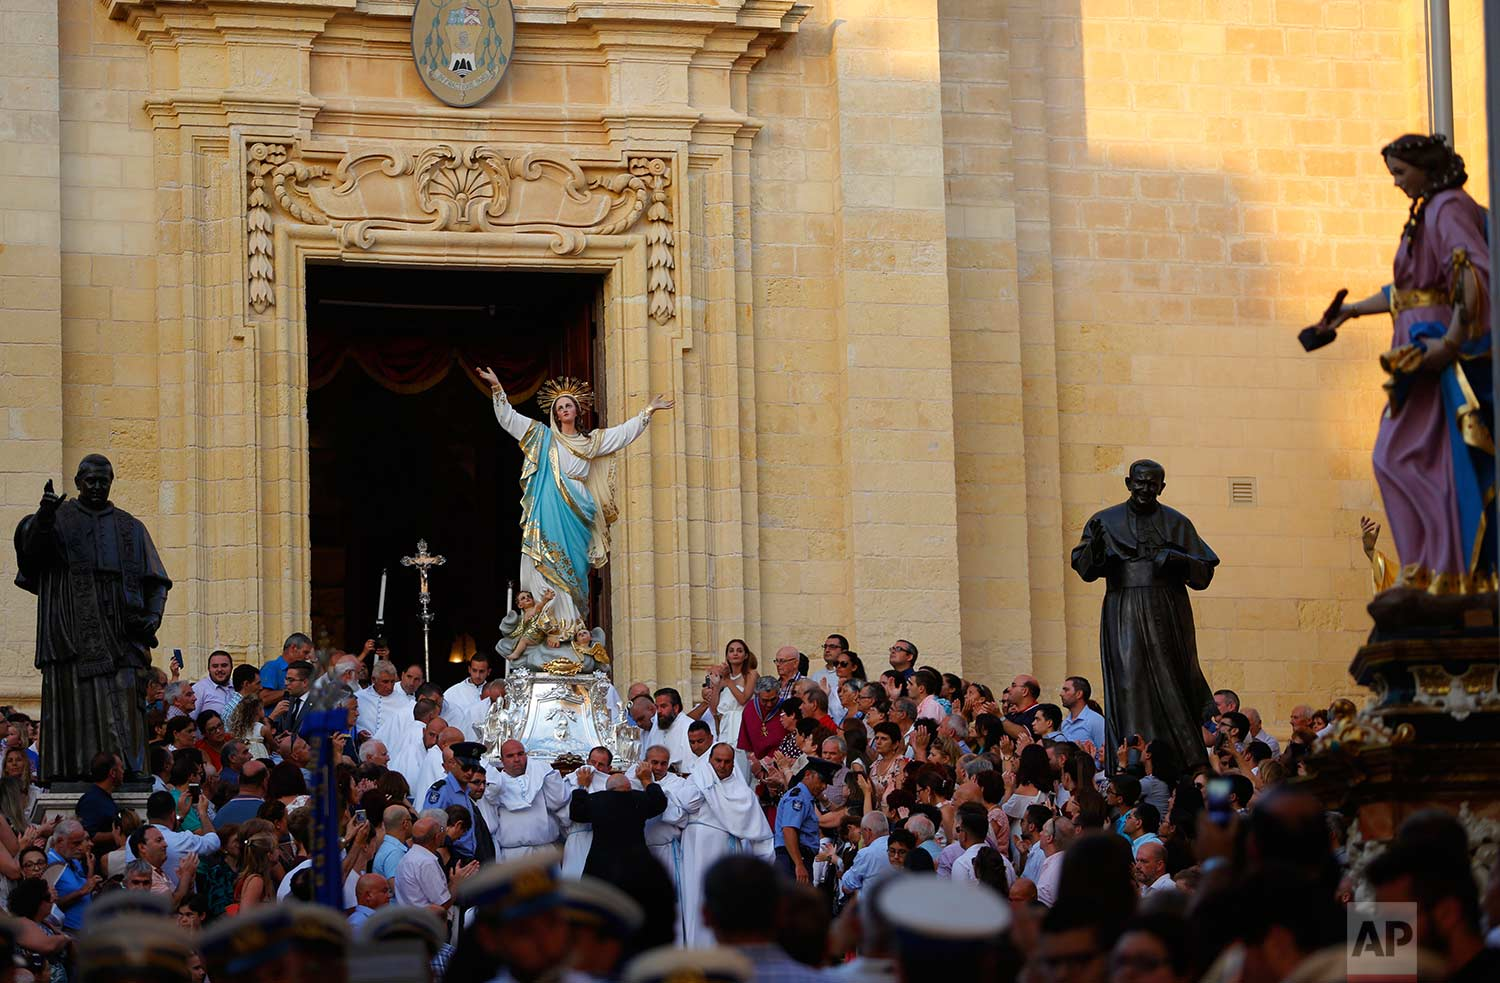 In this photo taken on Wednesday, Aug. 15, 2018, the Statue of the Virgin Mary is taken out from Gozo Cathedral in the old Citadel in Rabat on the island of Gozo in the Maltese archipelago during the feast day of the Assumption of Mary. (AP Photo/Niranjan Shrestha)